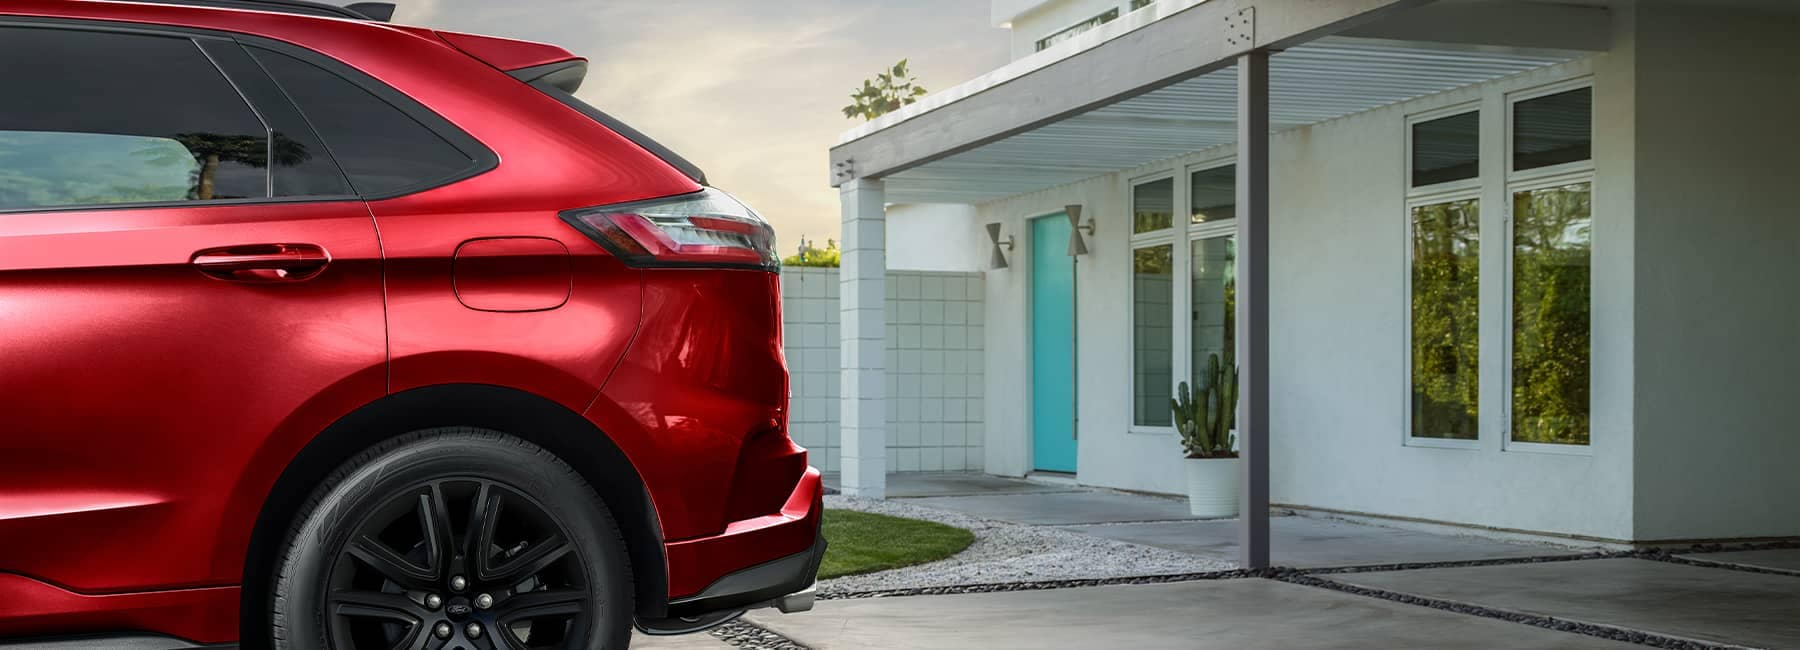 Red 2021 Ford Edge parked in front of a modern home